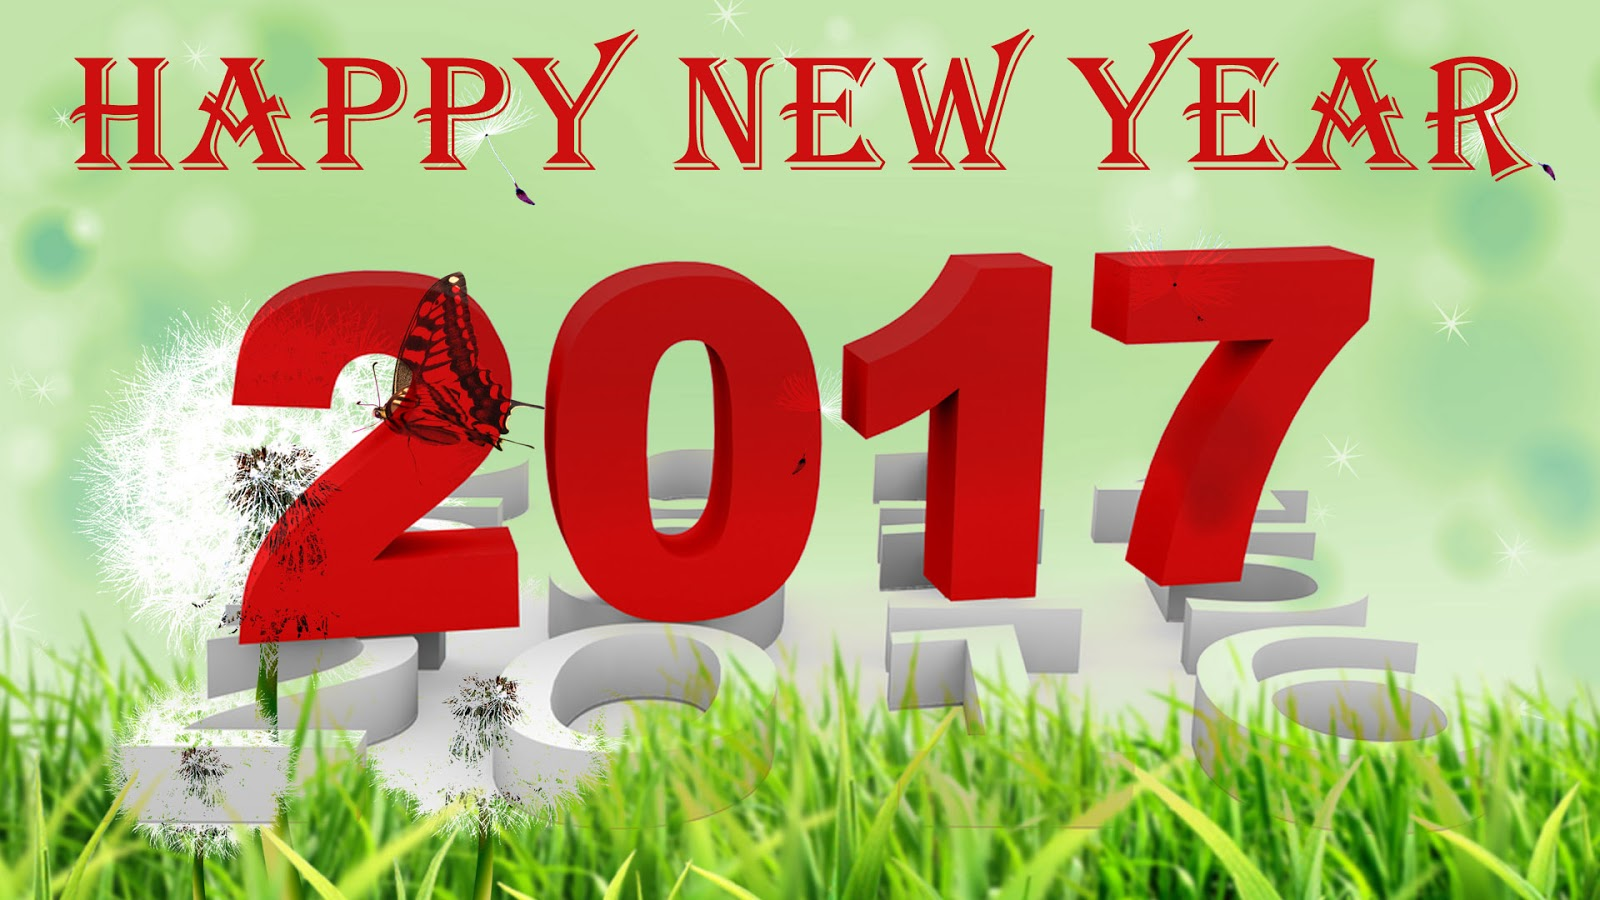 Wallpaper download new 2017 - Happy New Year2017 20